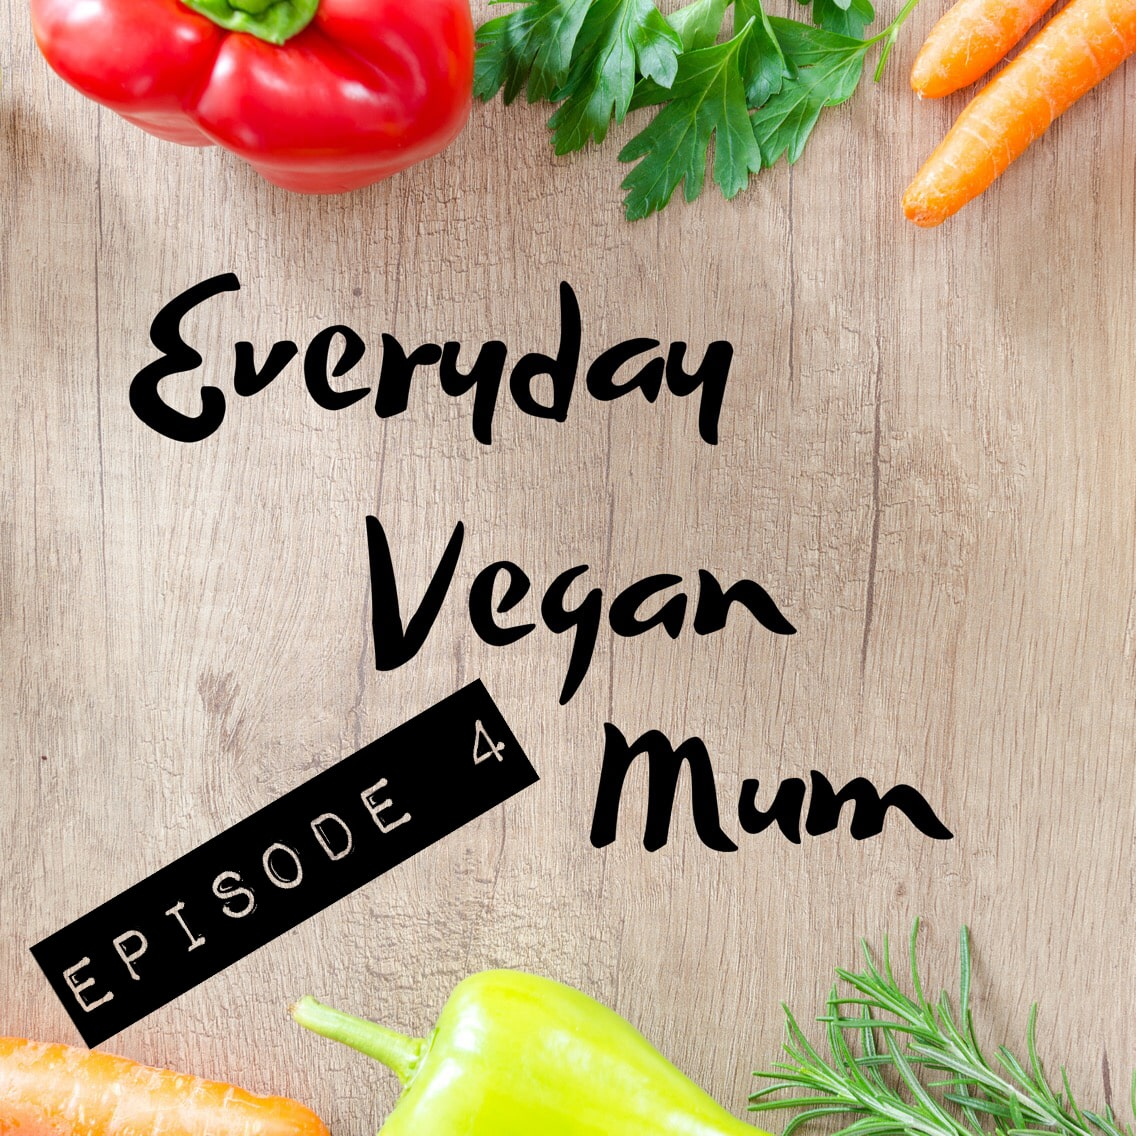 How to Teach Your Child's School About Veganism – The Everyday Vegan Mum Podcast Episode 4 – Interview with Laura from Primary Veducation